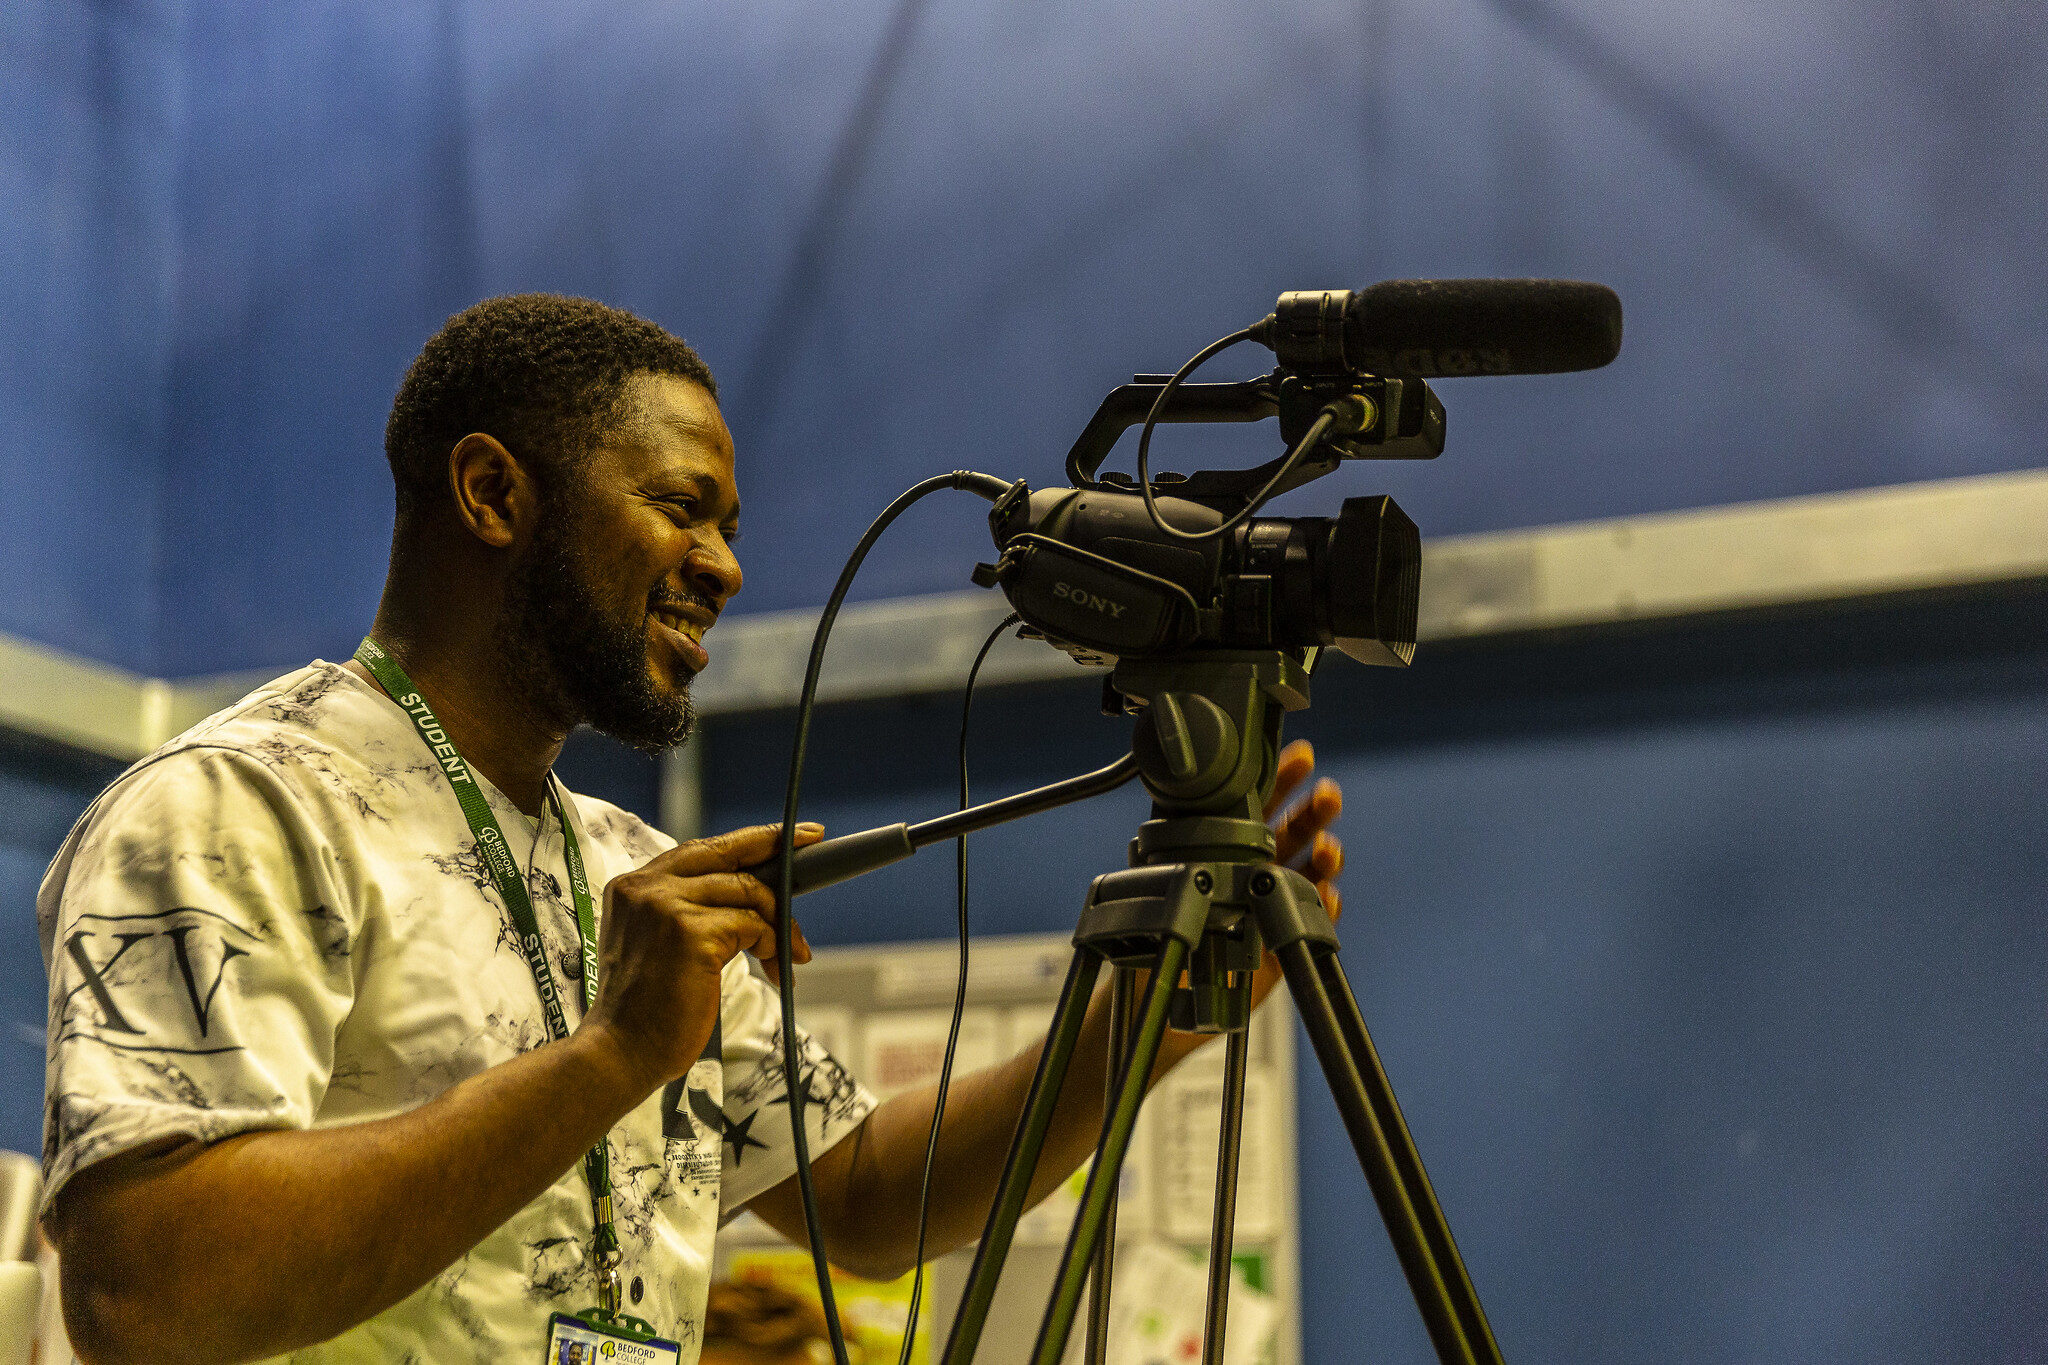 Media student with camera filming Bedford College